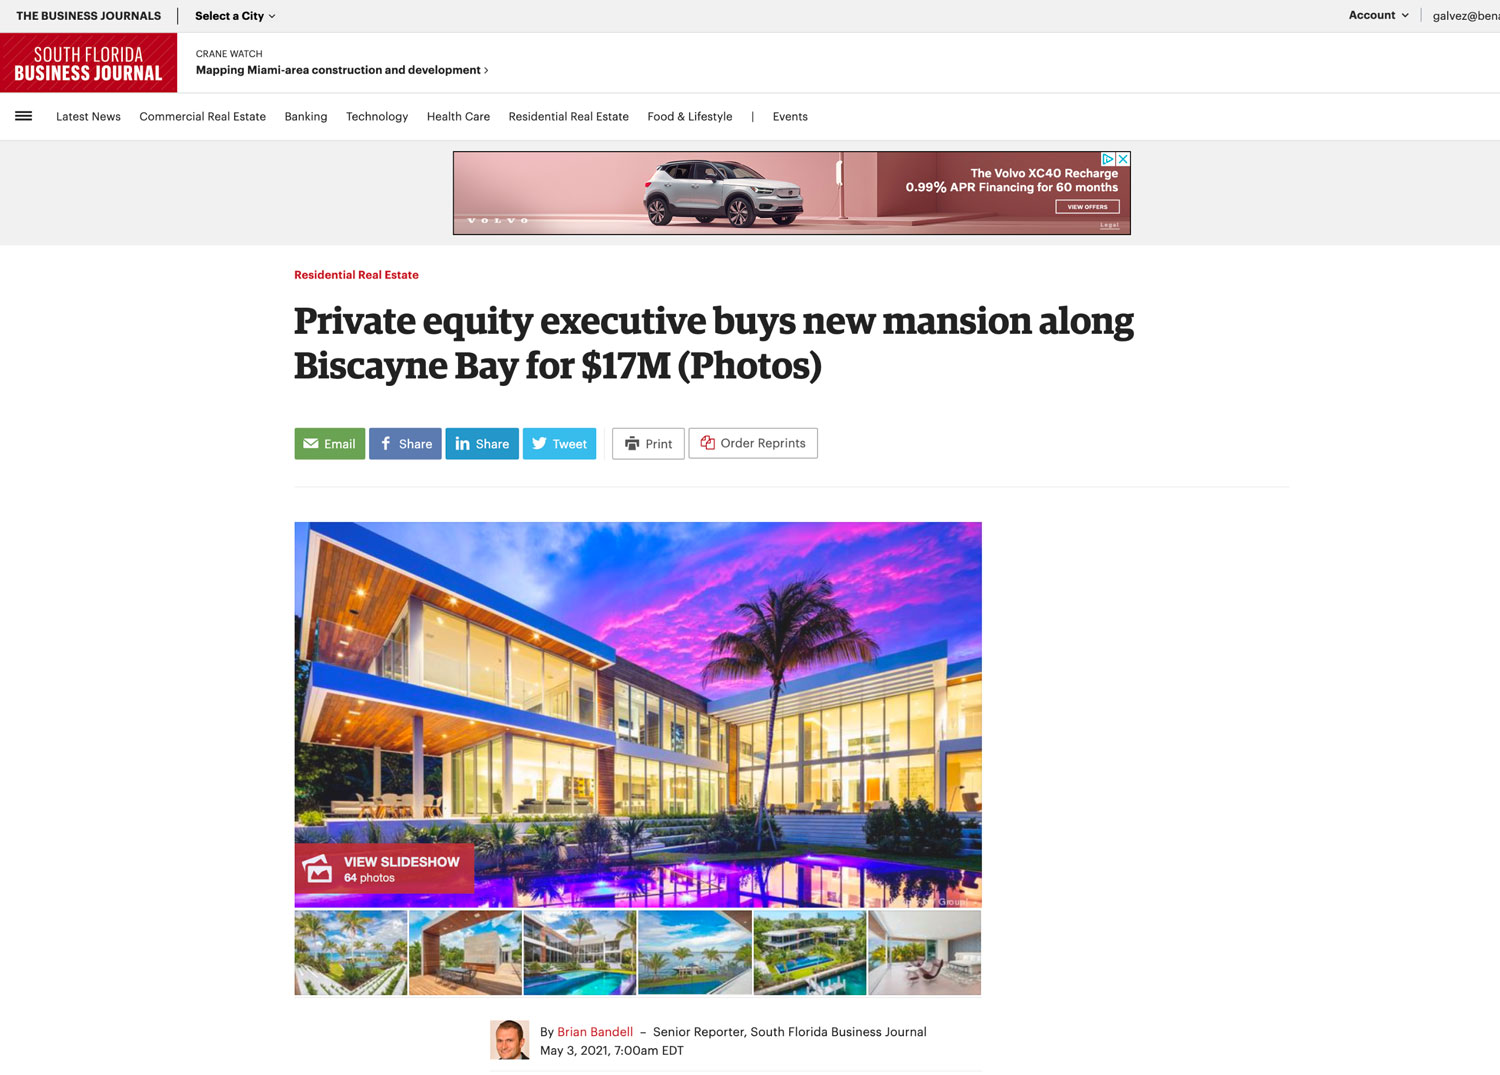 South Florida Business Journal – Private Equity Executive Buys New Mansion Along Biscayne Bay for $17m